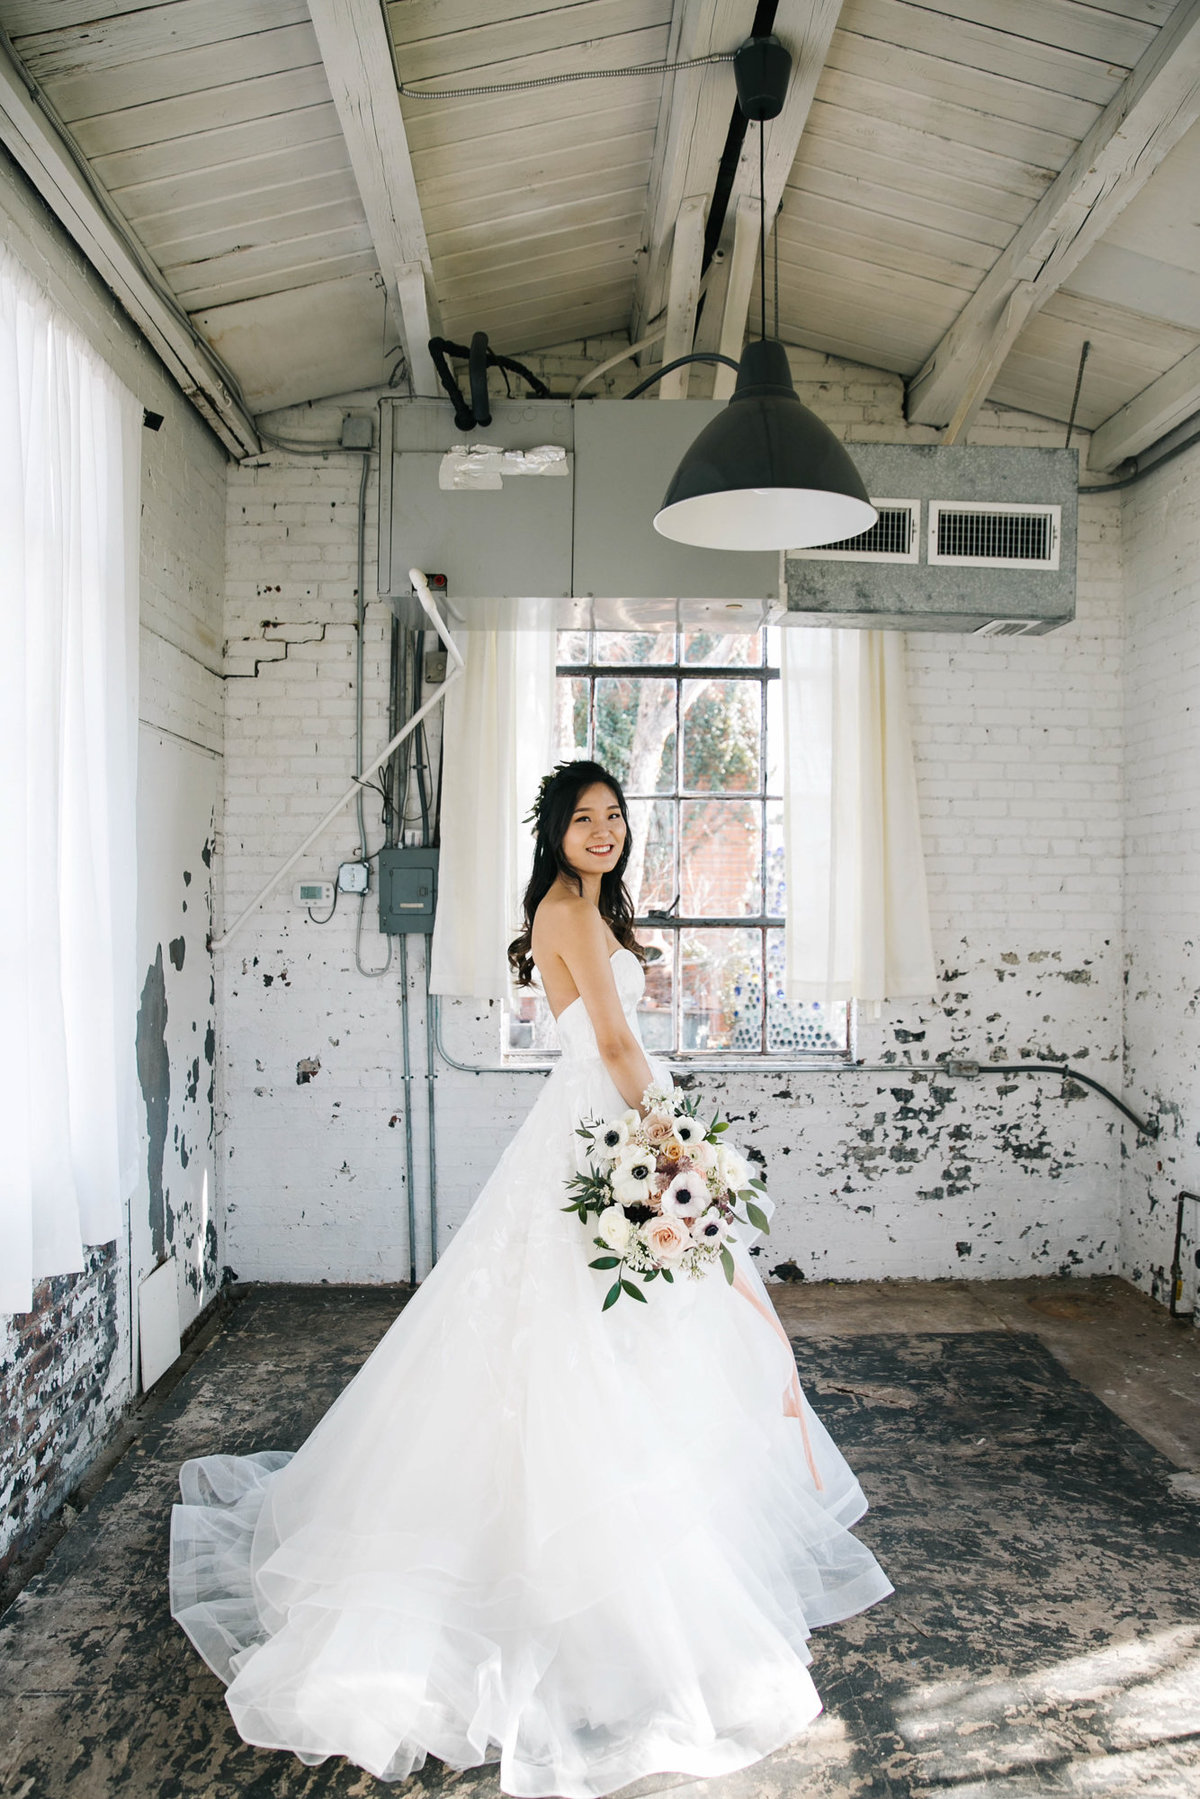 Dallas-Downtown-wedding-at-Hickory-Street-Annex-by-Julia-Sharapova-Photographer-71